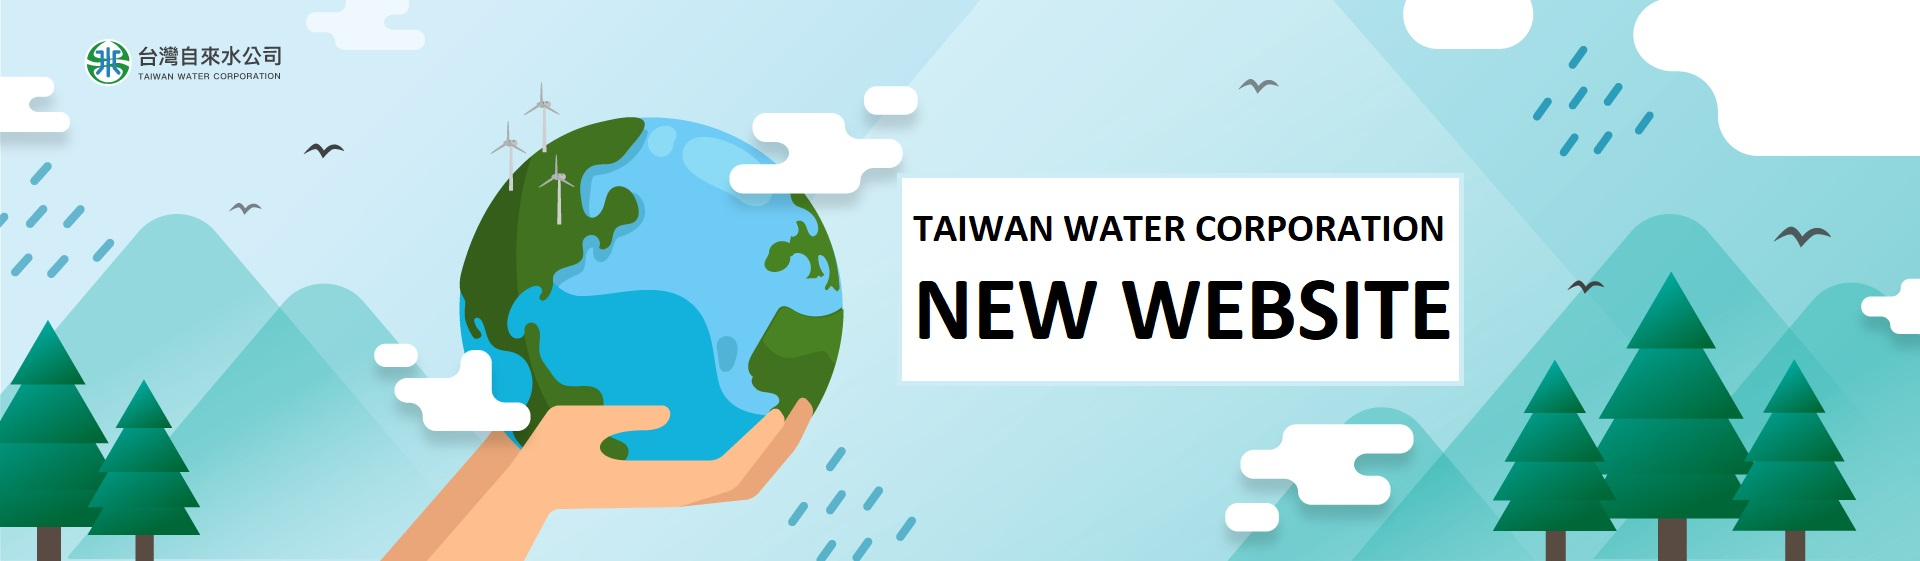 TAIWAN WATER CORPORATION ENGLISH WEB-banner.jpg